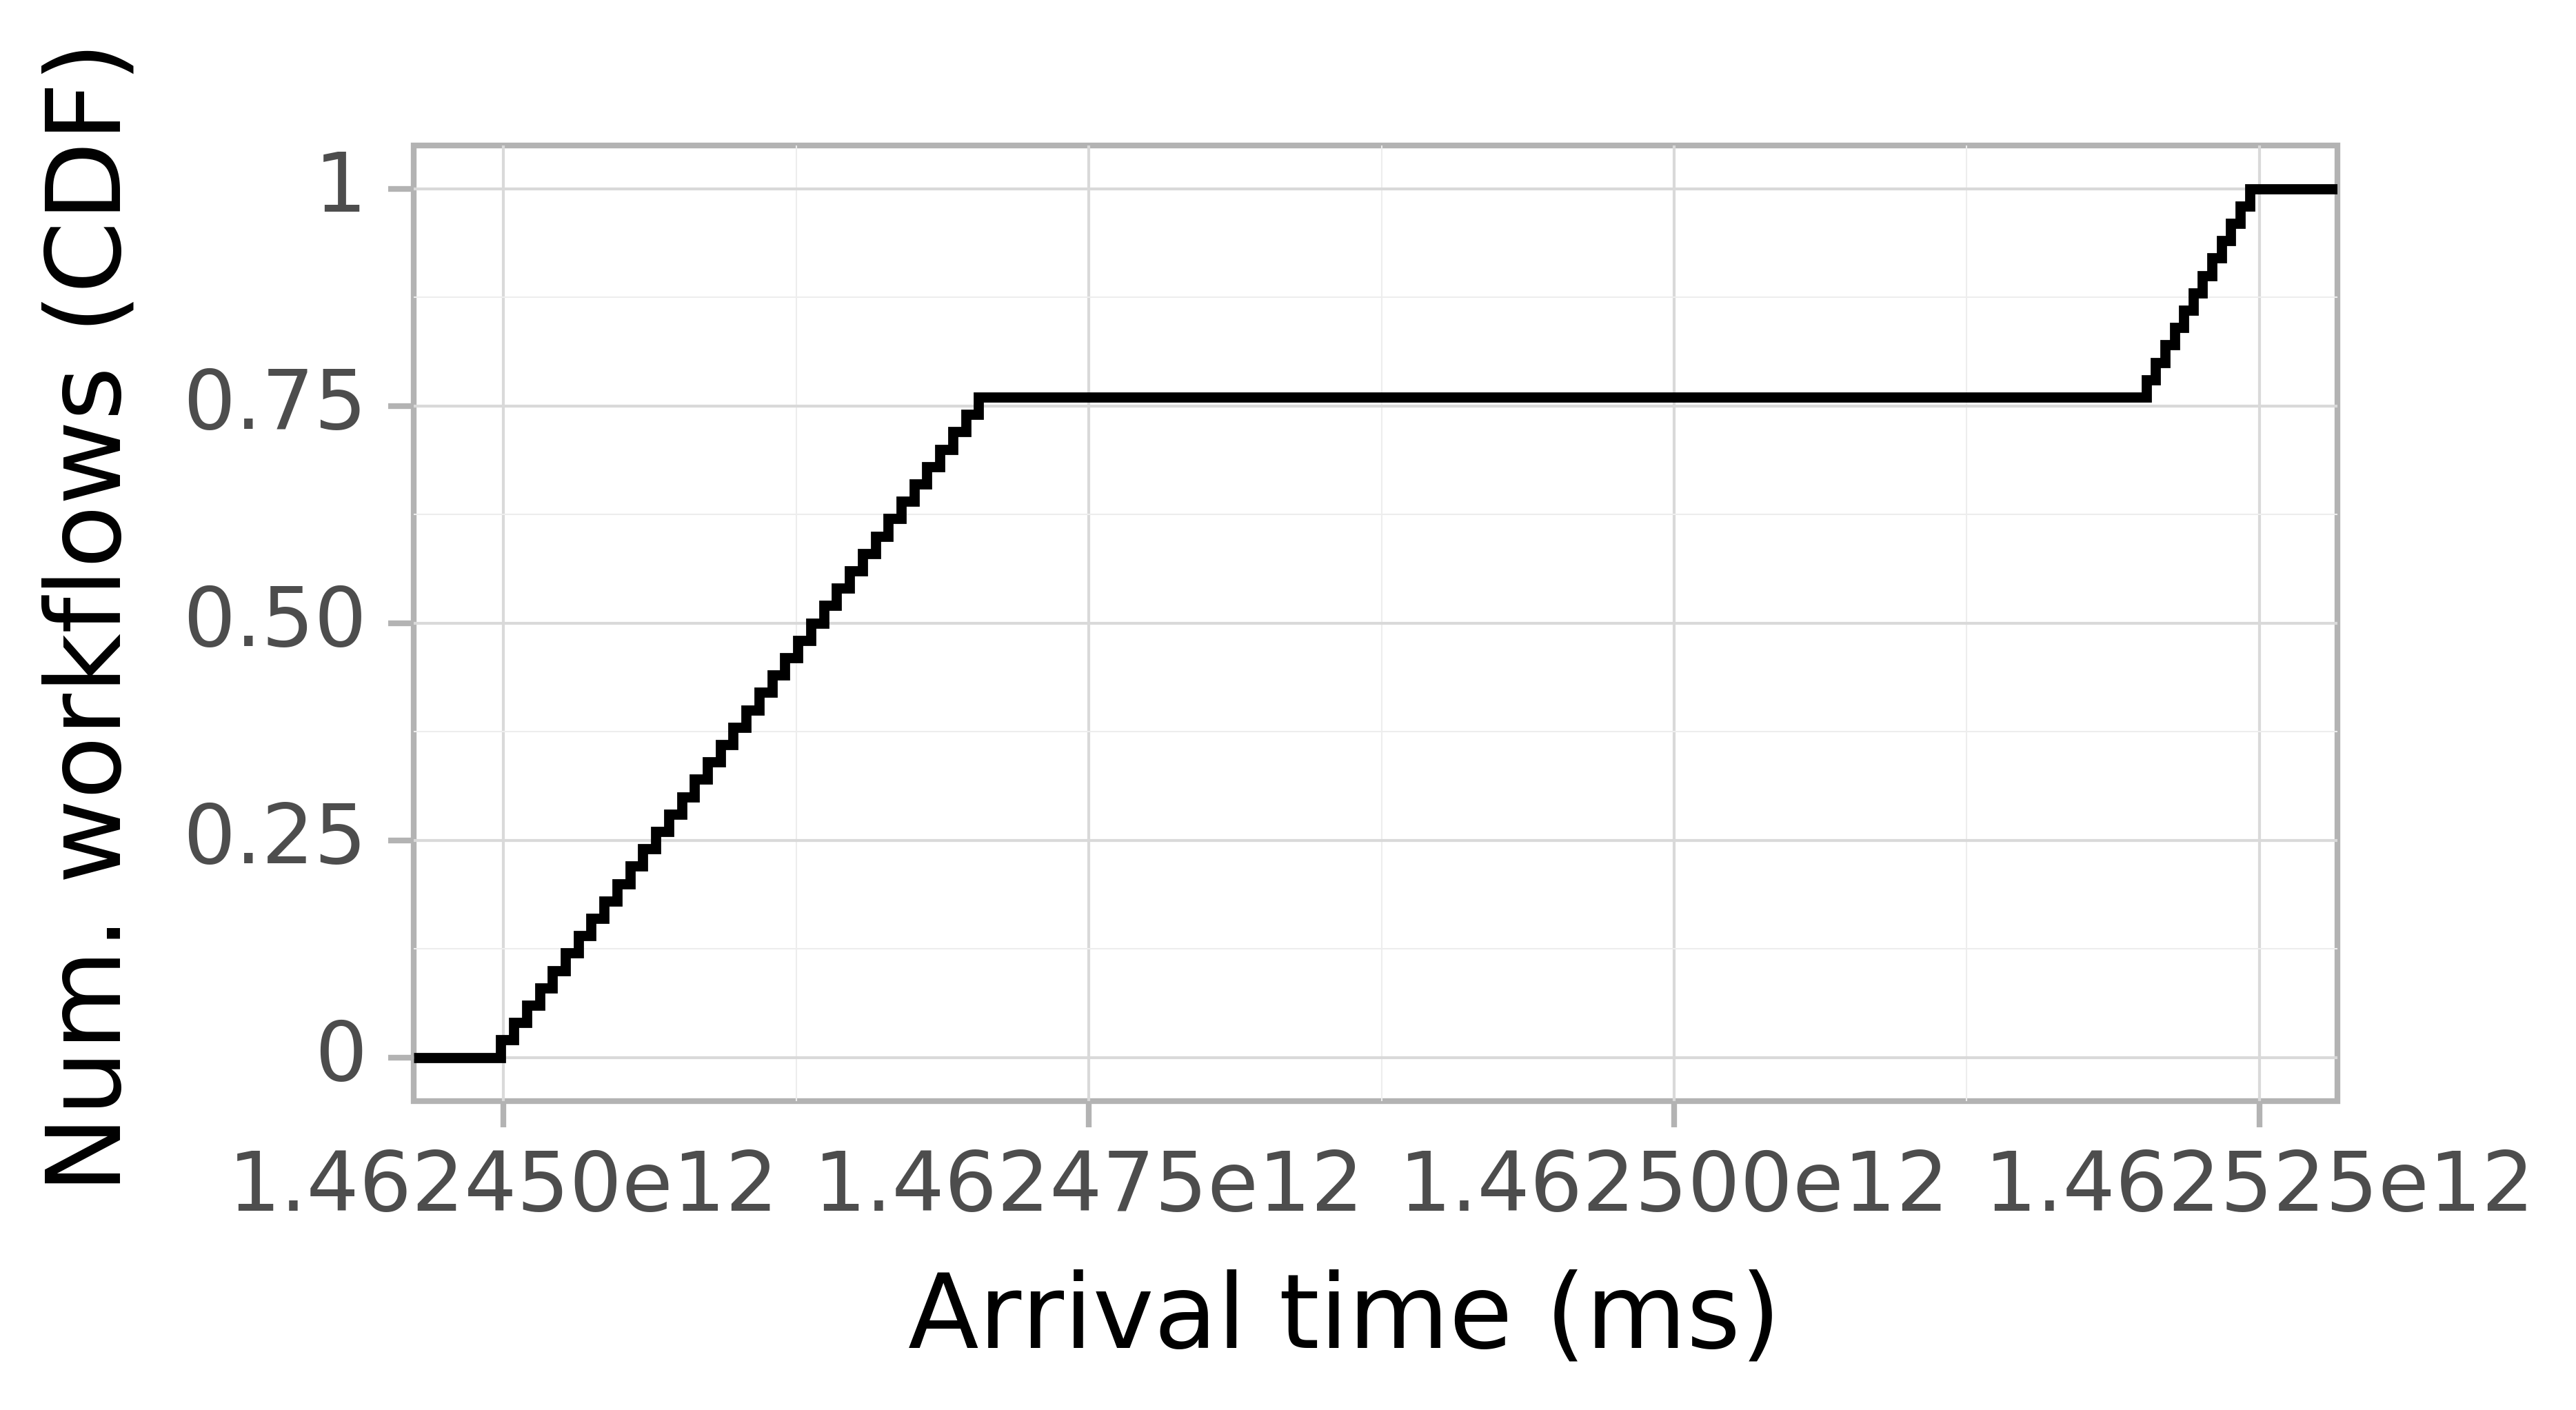 Job arrival CDF graph for the askalon-new_ee52 trace.